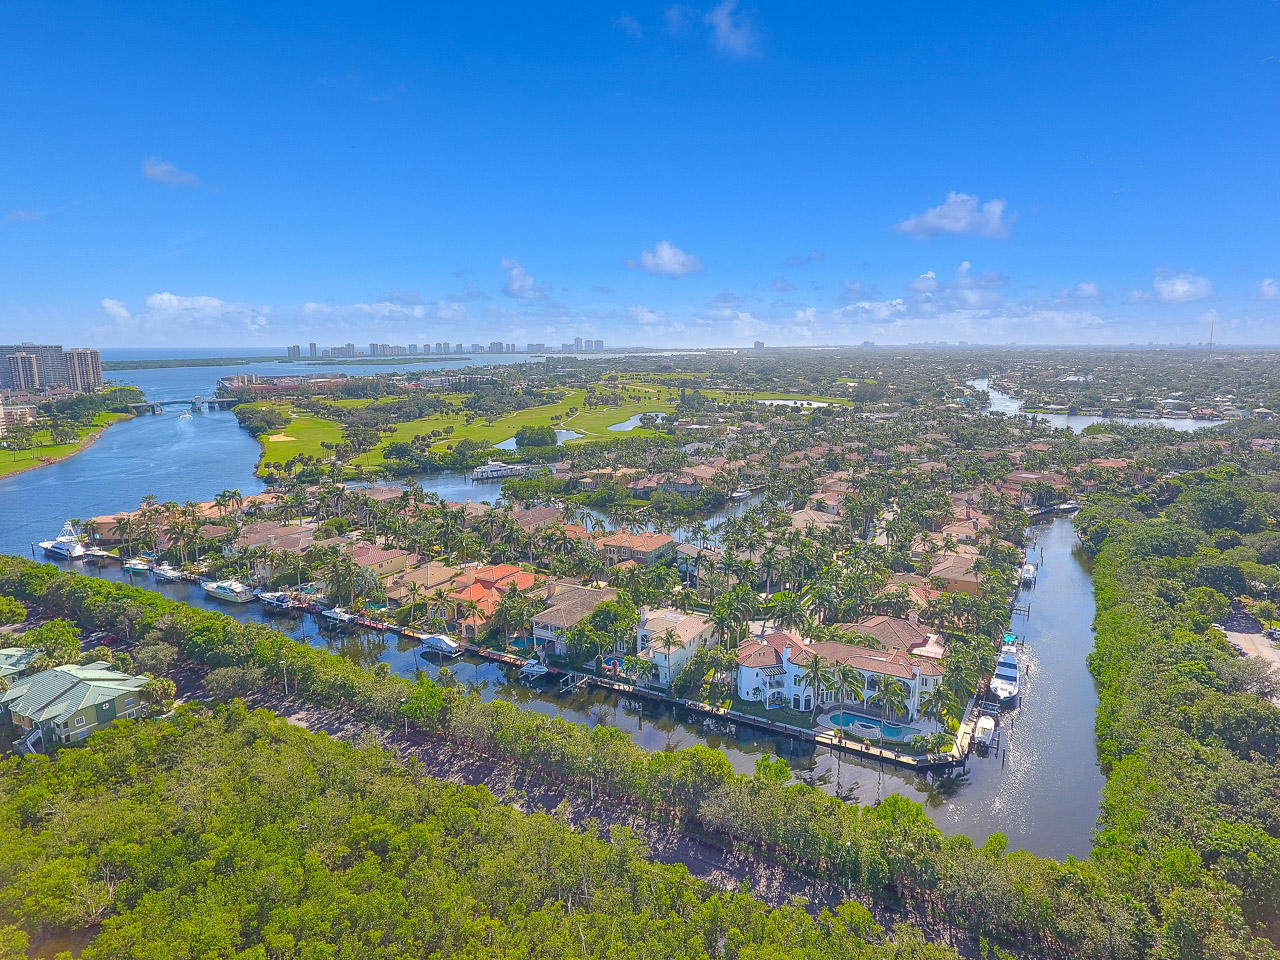 829 Harbour Isles Place, North Palm Beach, Florida 33410, 4 Bedrooms Bedrooms, ,4.2 BathroomsBathrooms,A,Single family,Harbour Isles,RX-10389160